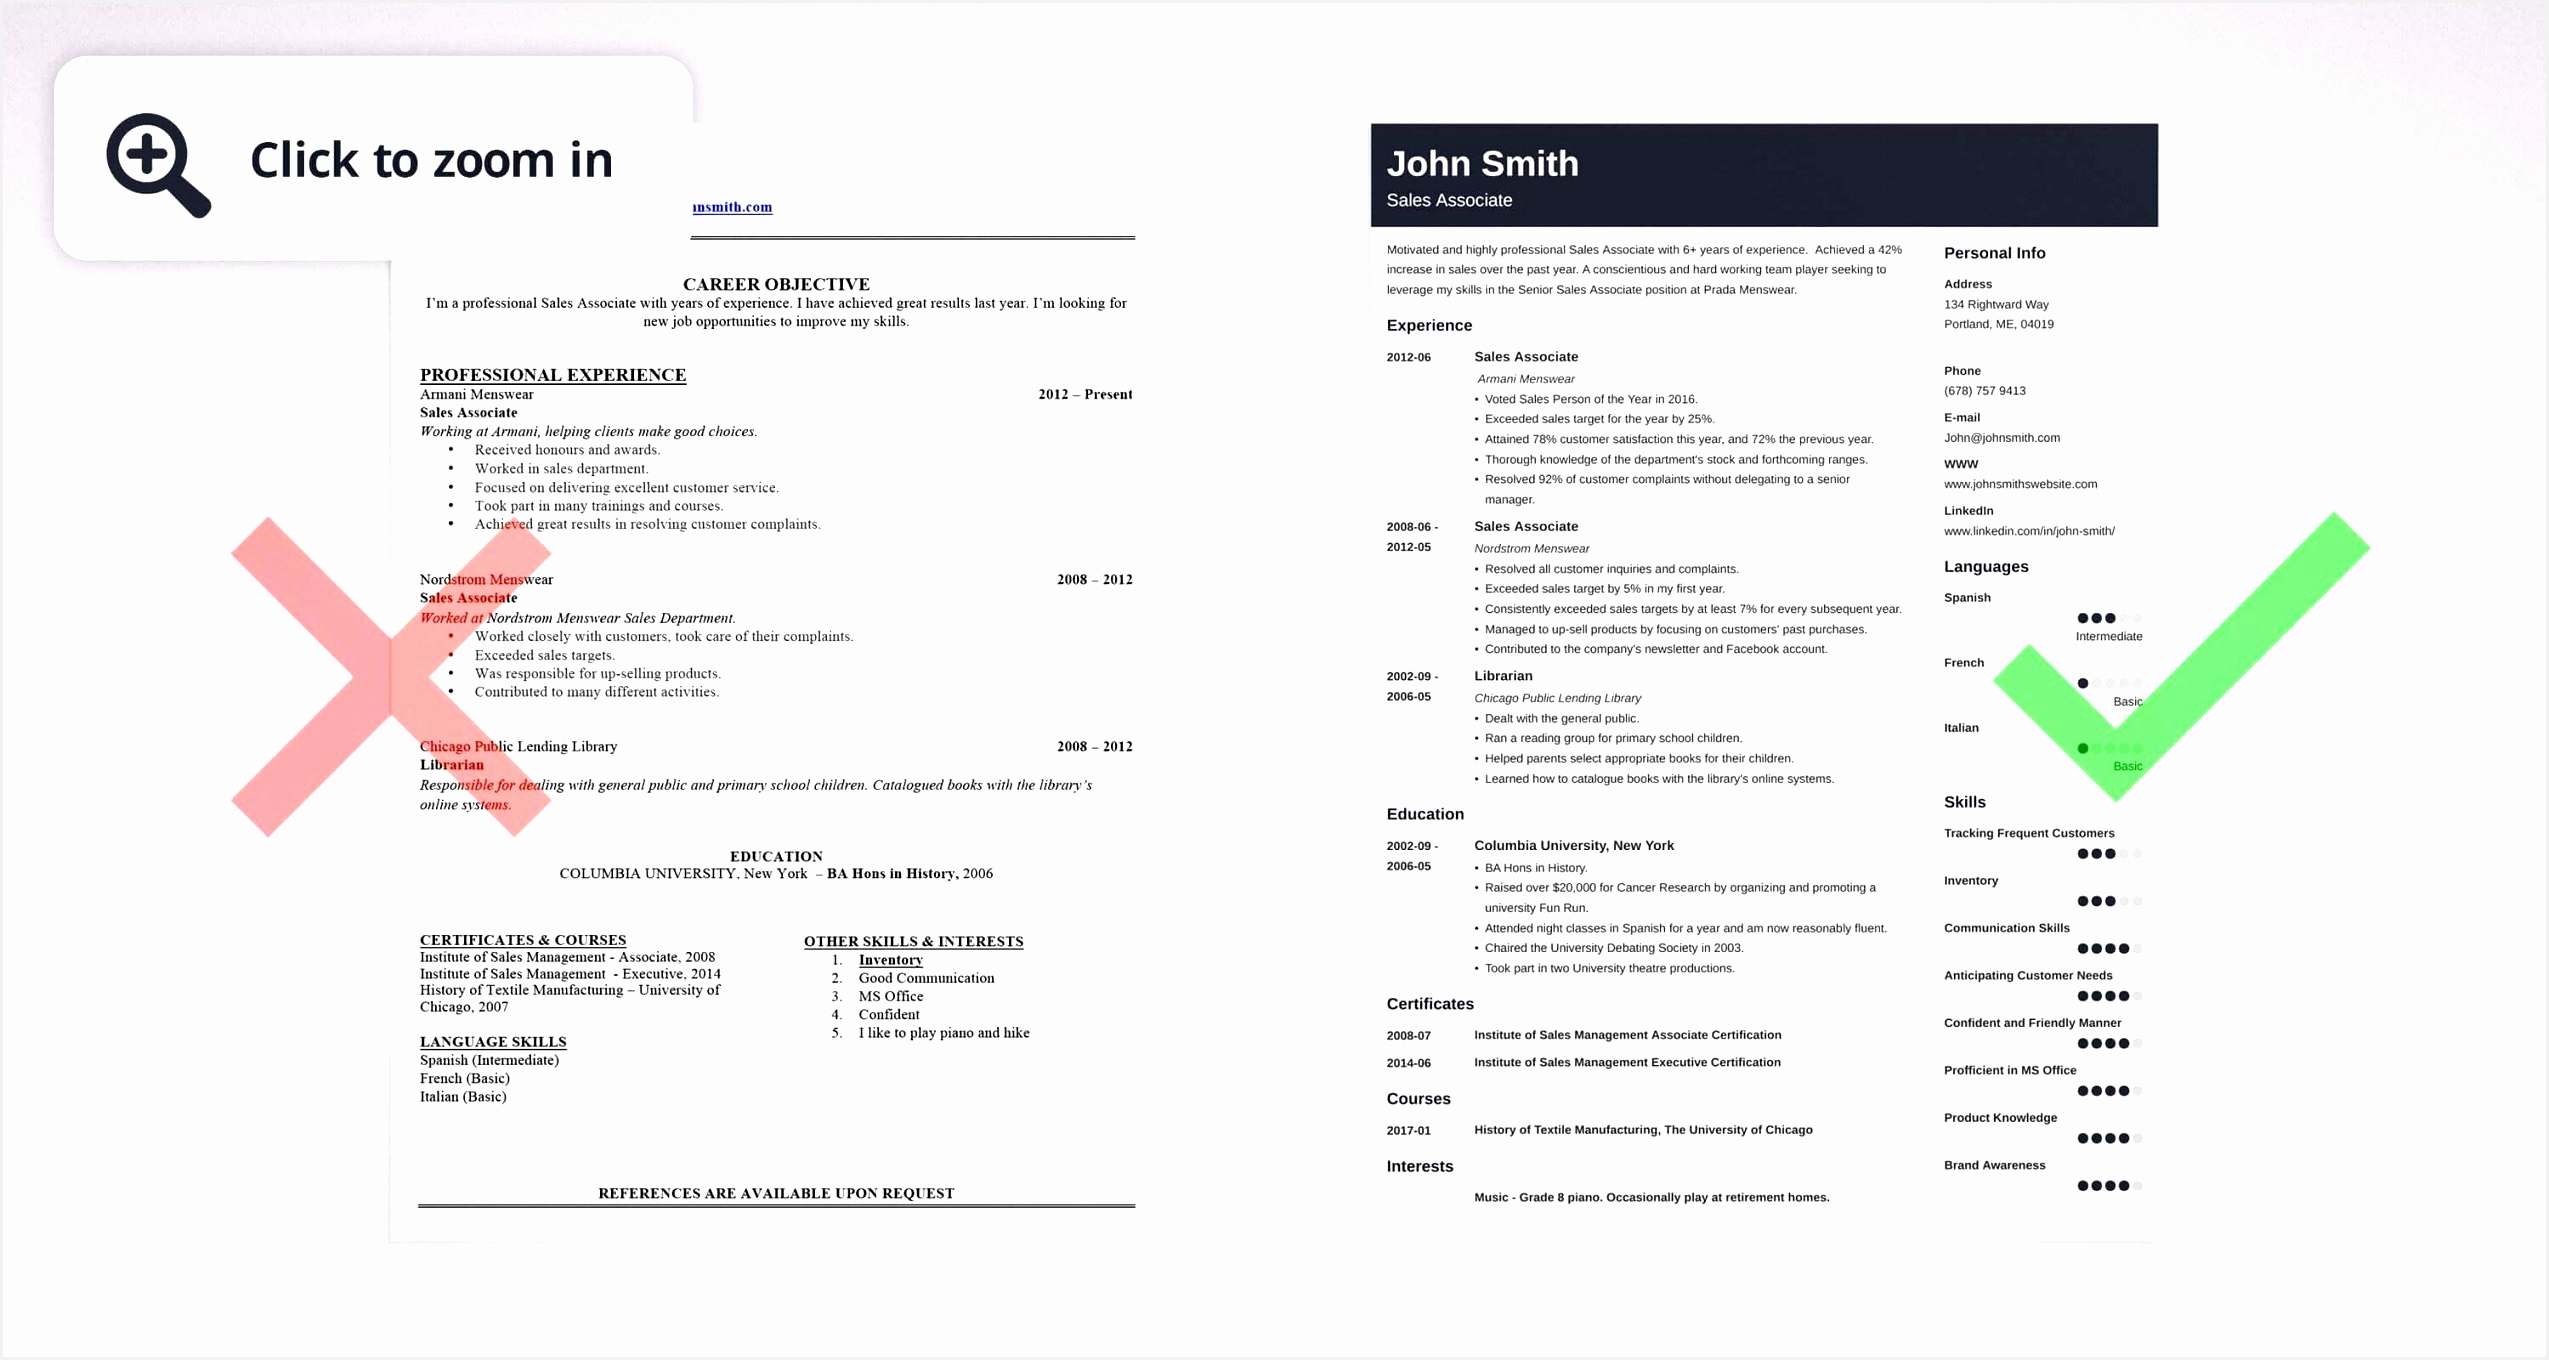 Free Blank Resume Templates Elegant A Resume for A Job Lovely Fresh Blank Resume format Resume13602549